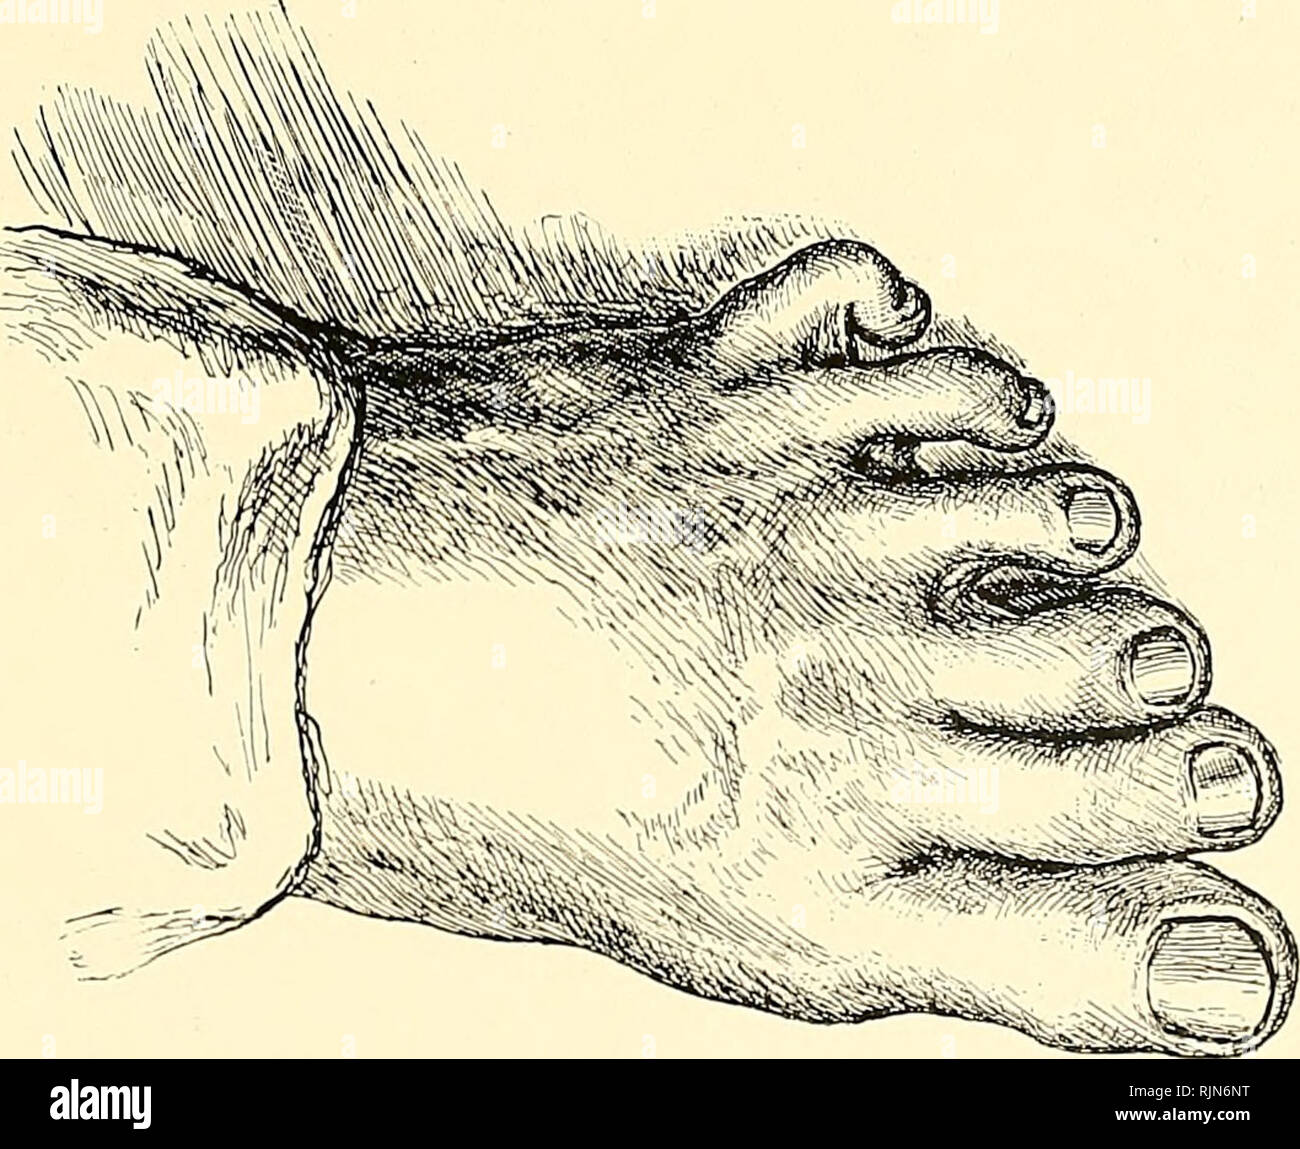 . The Bahama Islands. Scientific expeditions. Fig. 1.—FOOT affected with ainhum of little toe. Fig. 2.—left foot of samson rooker, .showing six toe.s VIEWS ILLUSTRATING SANITARY CONDITIONS. Please note that these images are extracted from scanned page images that may have been digitally enhanced for readability - coloration and appearance of these illustrations may not perfectly resemble the original work.. Shattuck, George Burbank, 1869-1934, [from old catalog] ed. New York, London, The Macmillan company - Stock Image